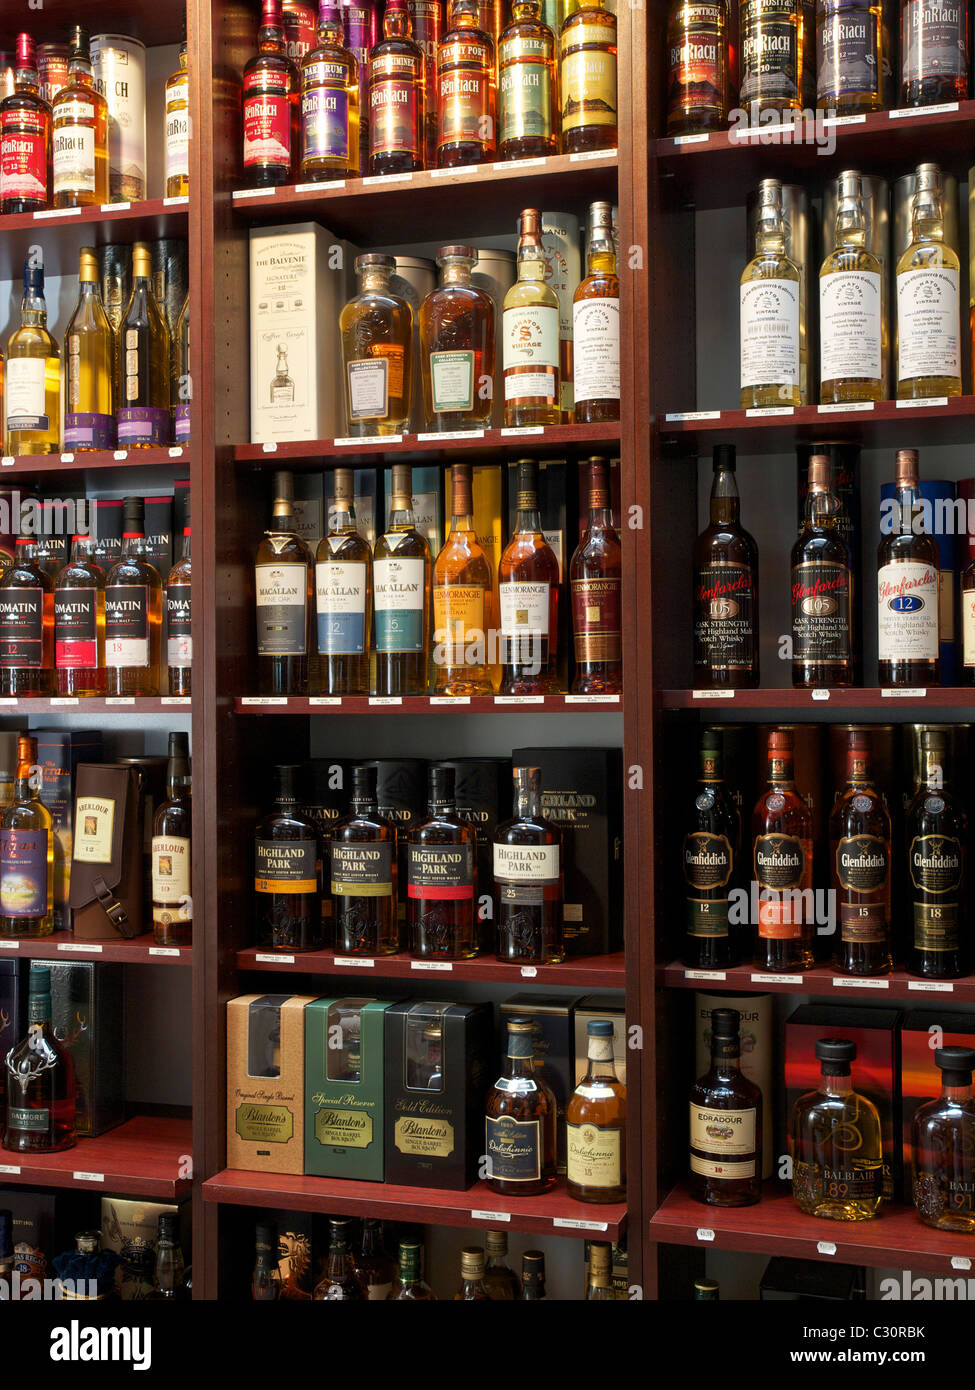 Many different kinds of Whisky bottles in a shop in Hasselt, Belgium Whiskey - Stock Image